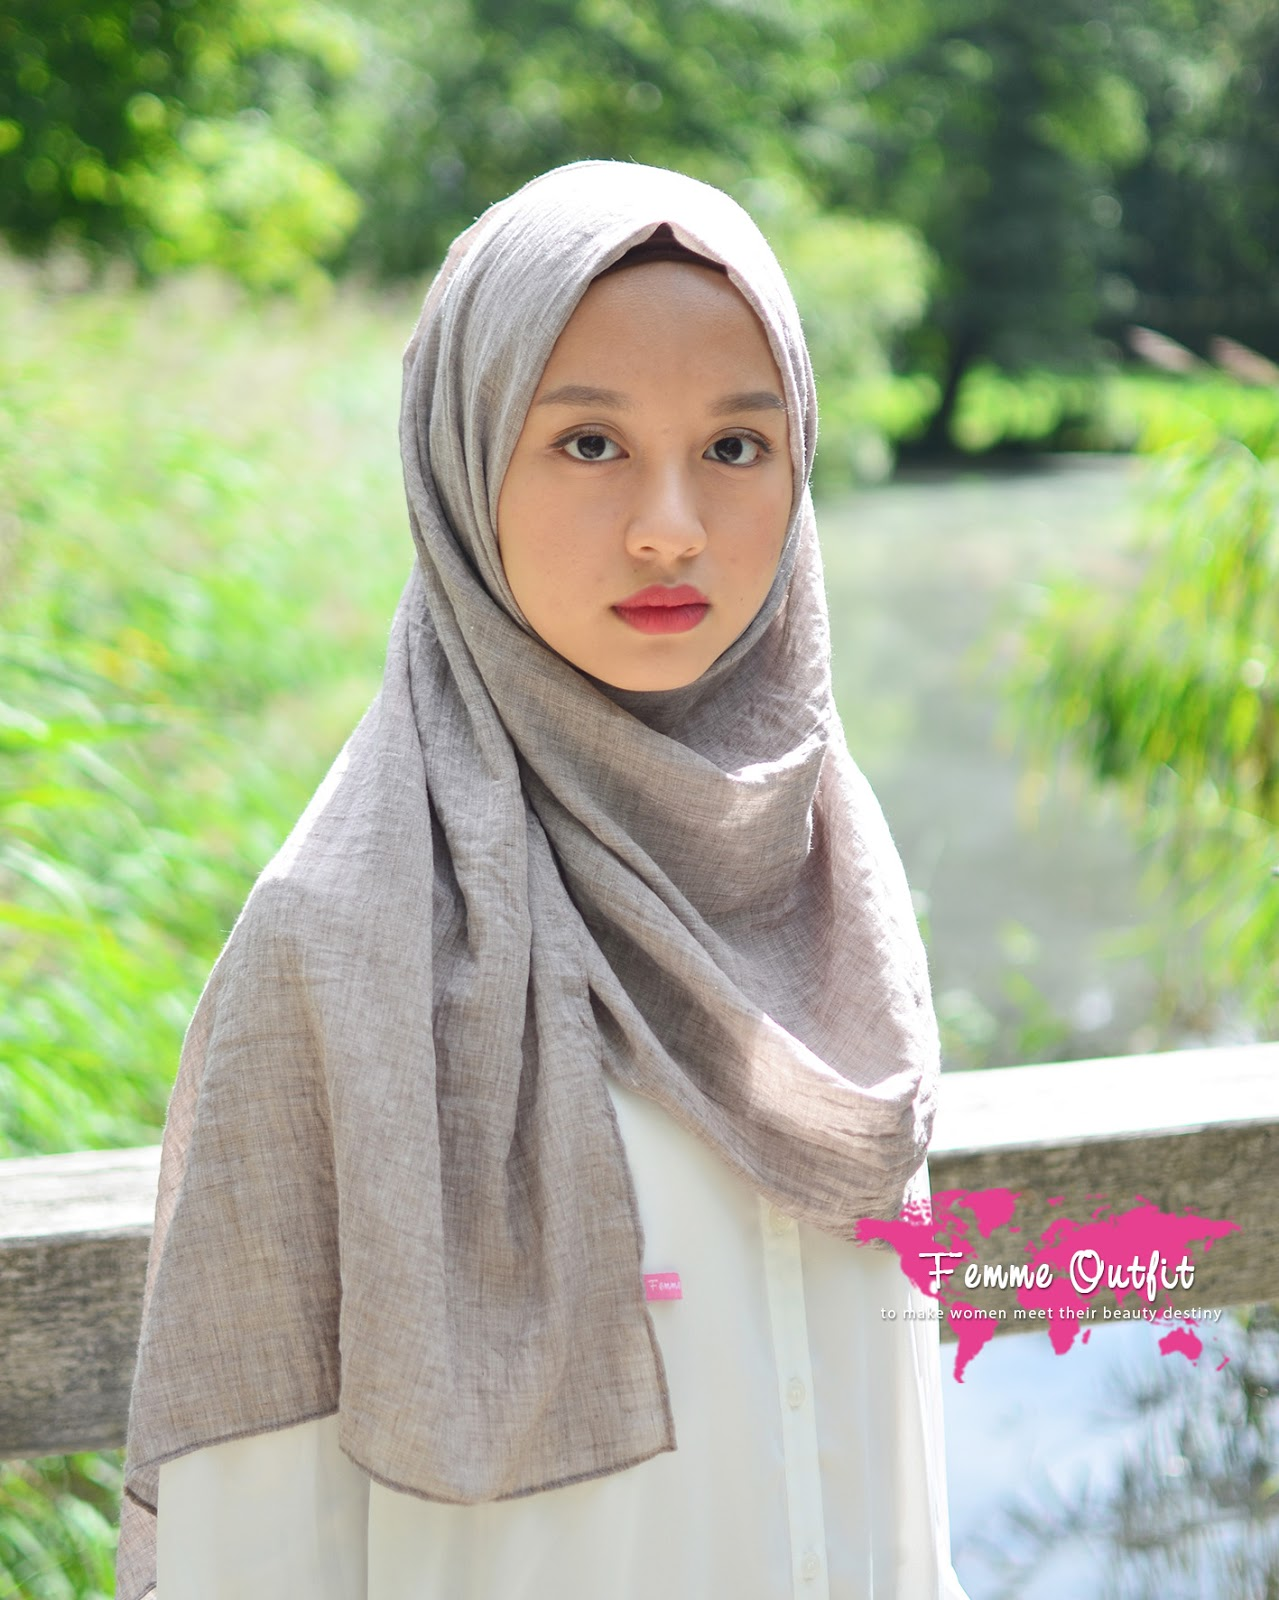 Femme Outfit Femme Outfit Tyrex Shawl New Colour